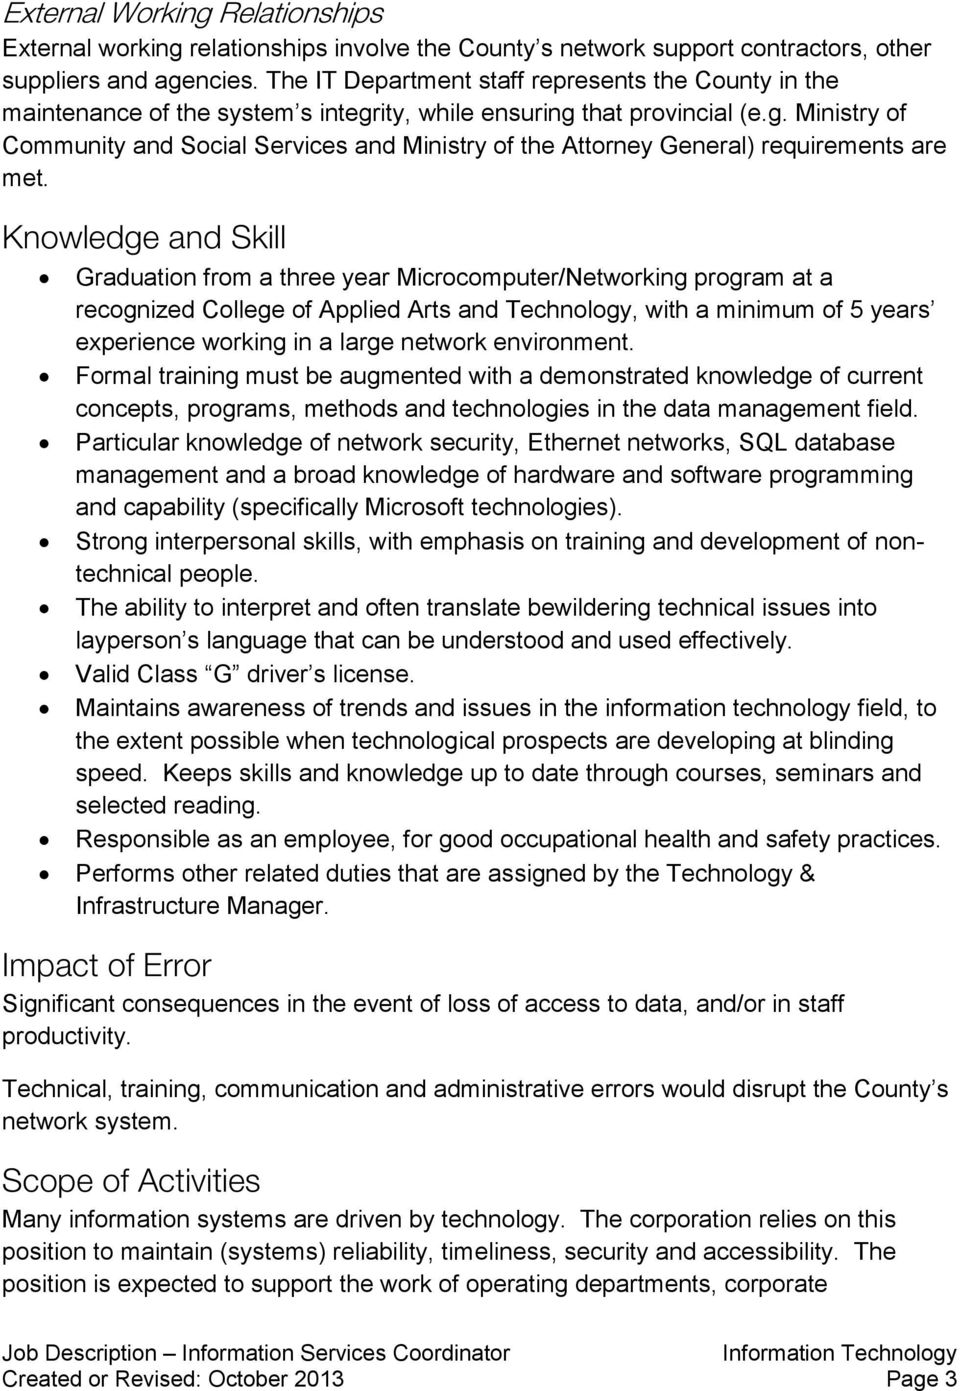 Knowledge and Skill Graduation from a three year Microcomputer/Networking program at a recognized College of Applied Arts and Technology, with a minimum of 5 years experience working in a large